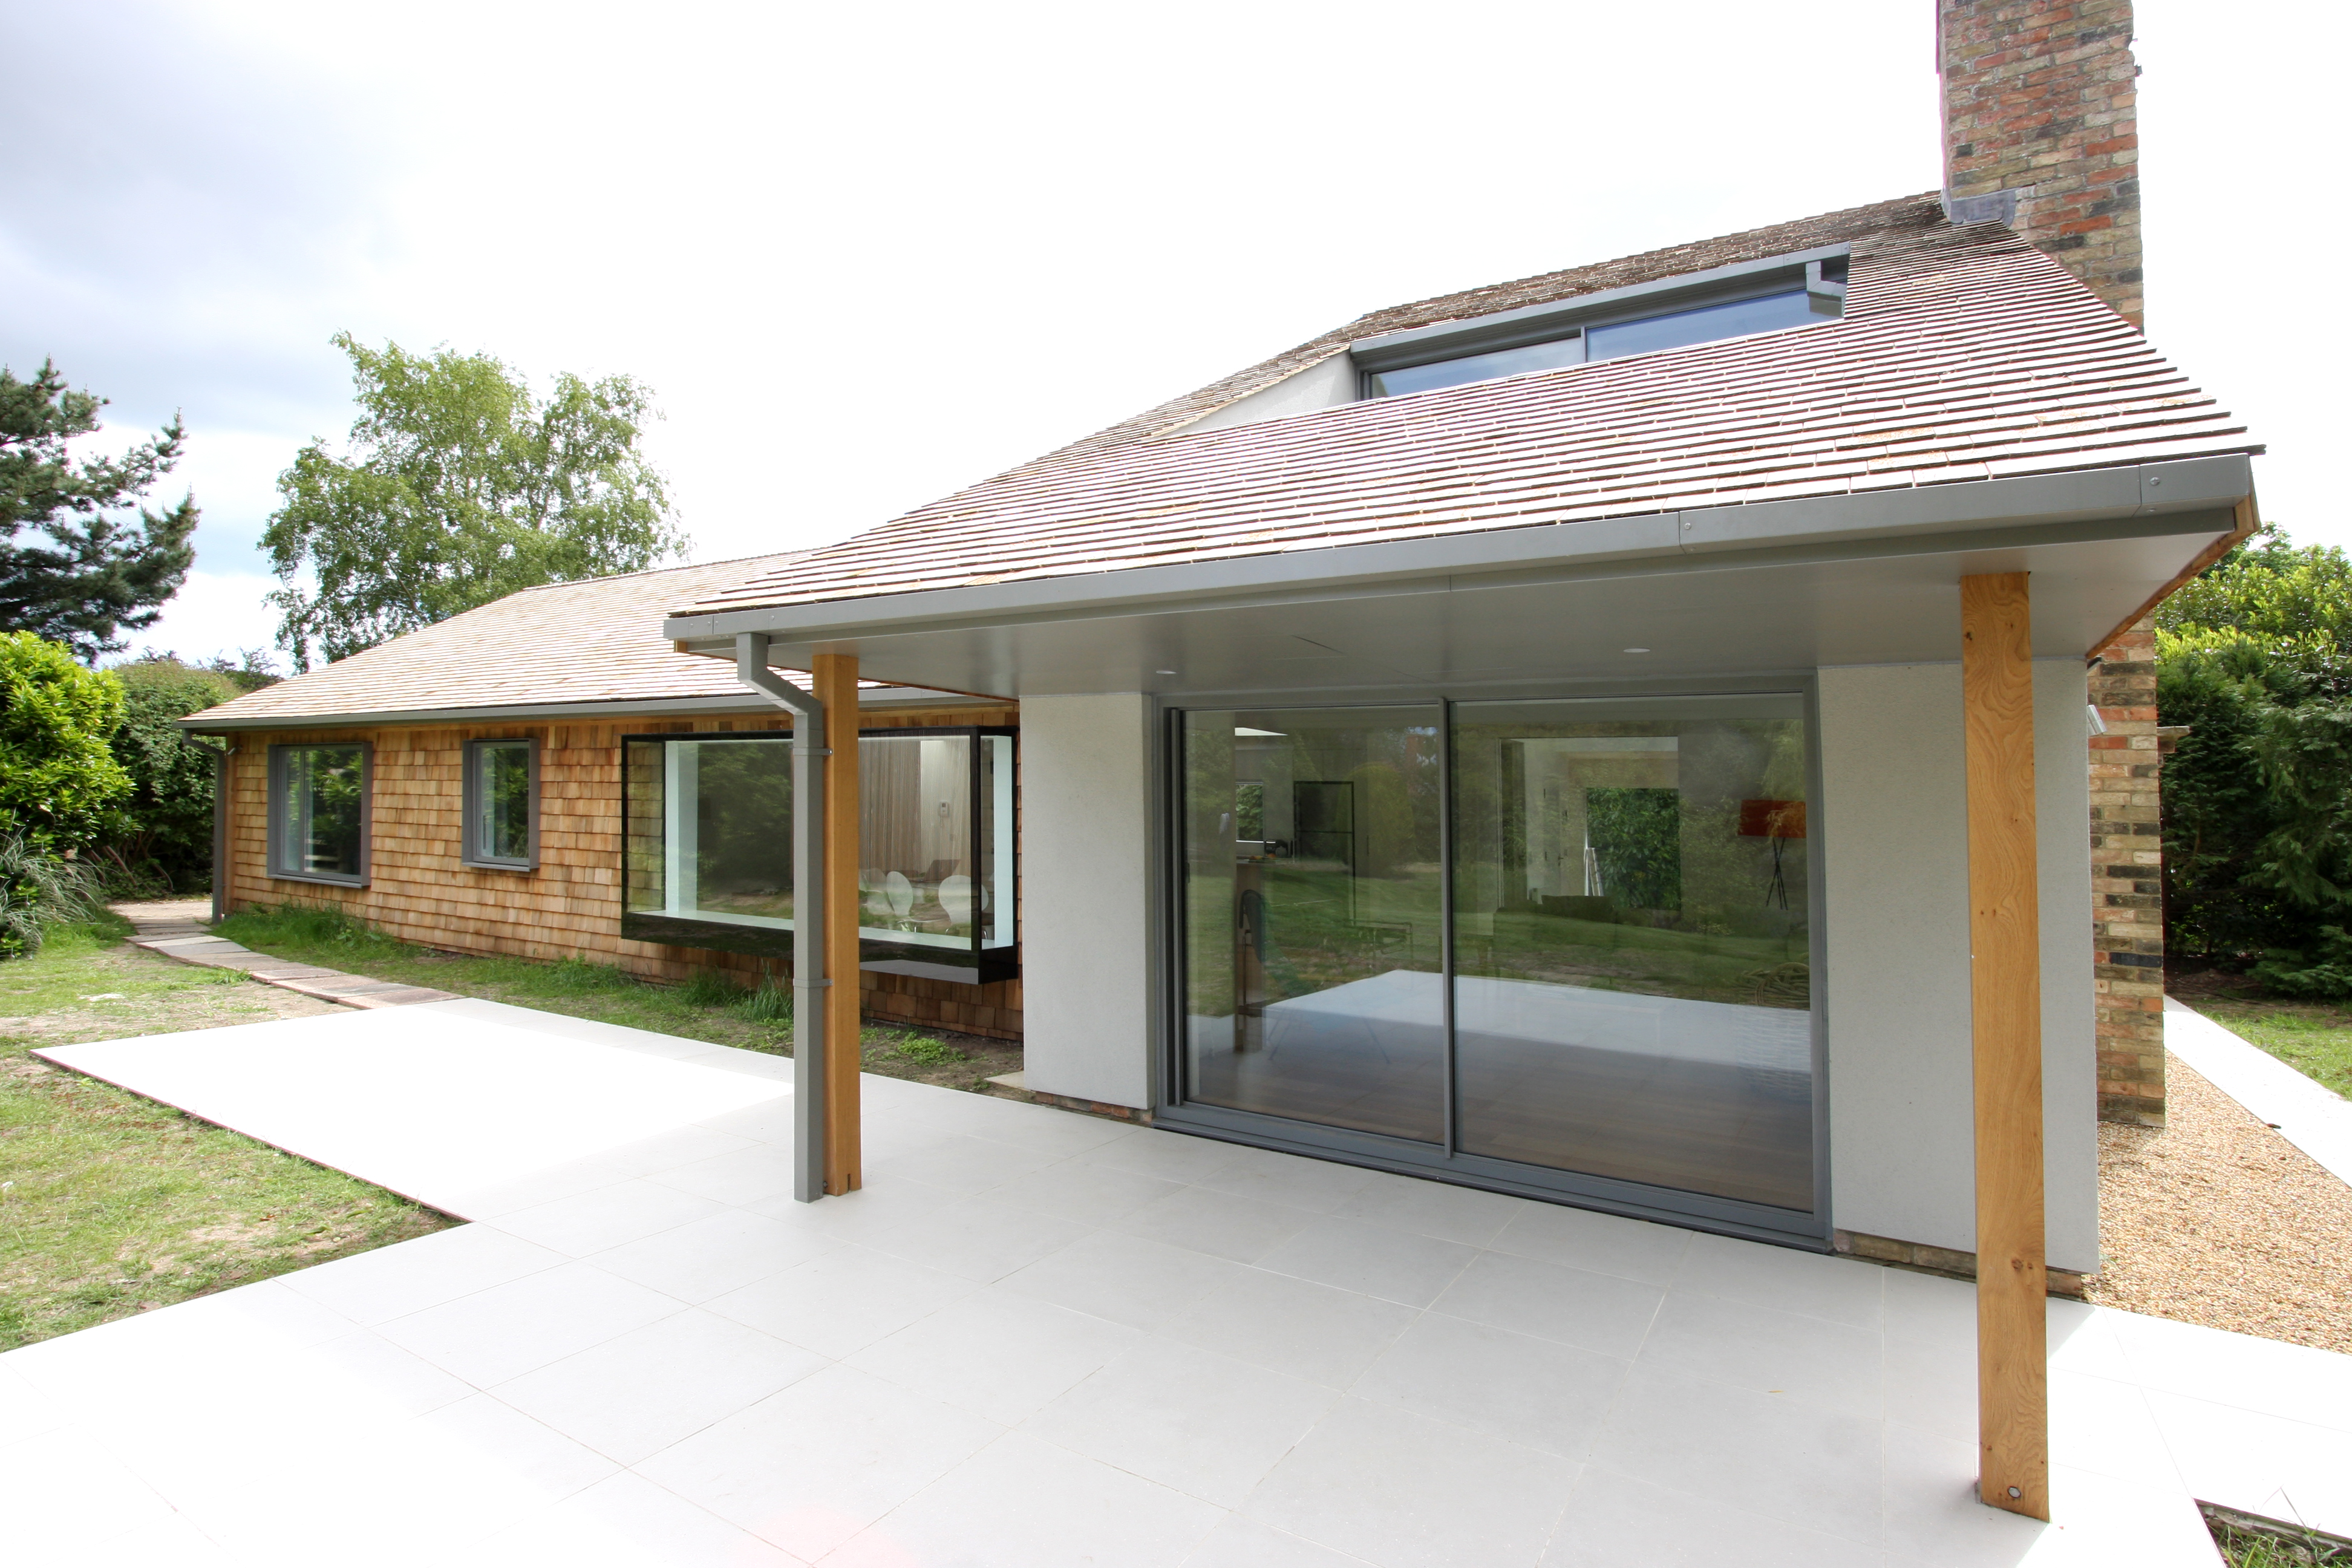 minimal windows to the ground floor of the new extension